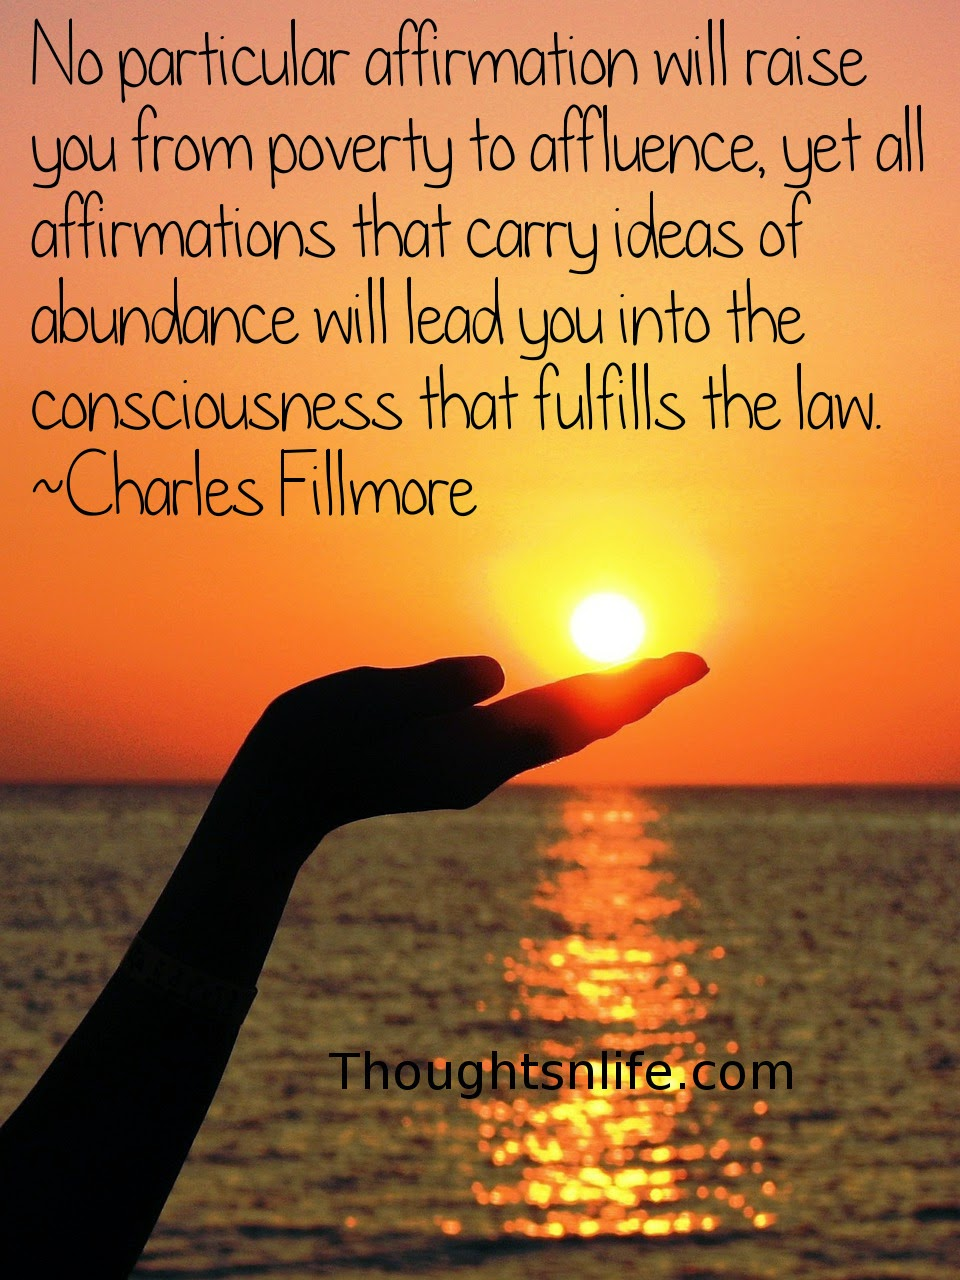 Thoughtsnlife.com: No particular affirmation will raise you from poverty to affluence, yet all affirmations that carry ideas of abundance will lead you into the consciousness that fulfills the law.  Charles Fillmore